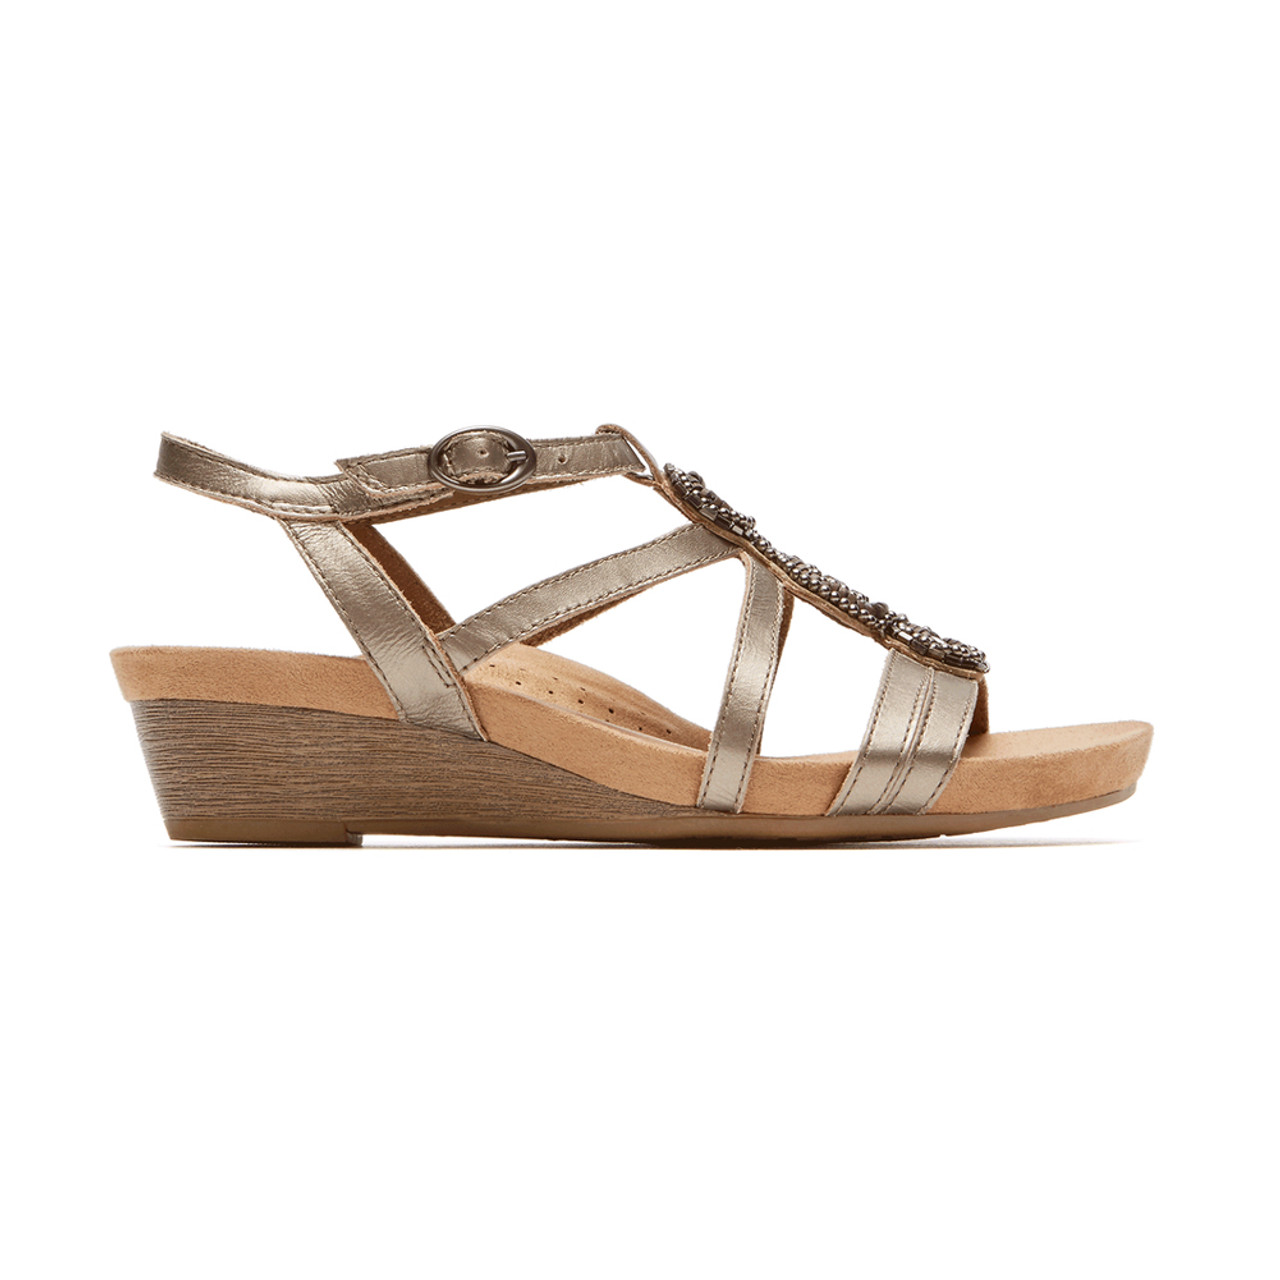 b57eec73b5c Rockport cobb hill womens hannah sandal metallic discount cobb jpg  1001x1001 Cobb hill sandals for women